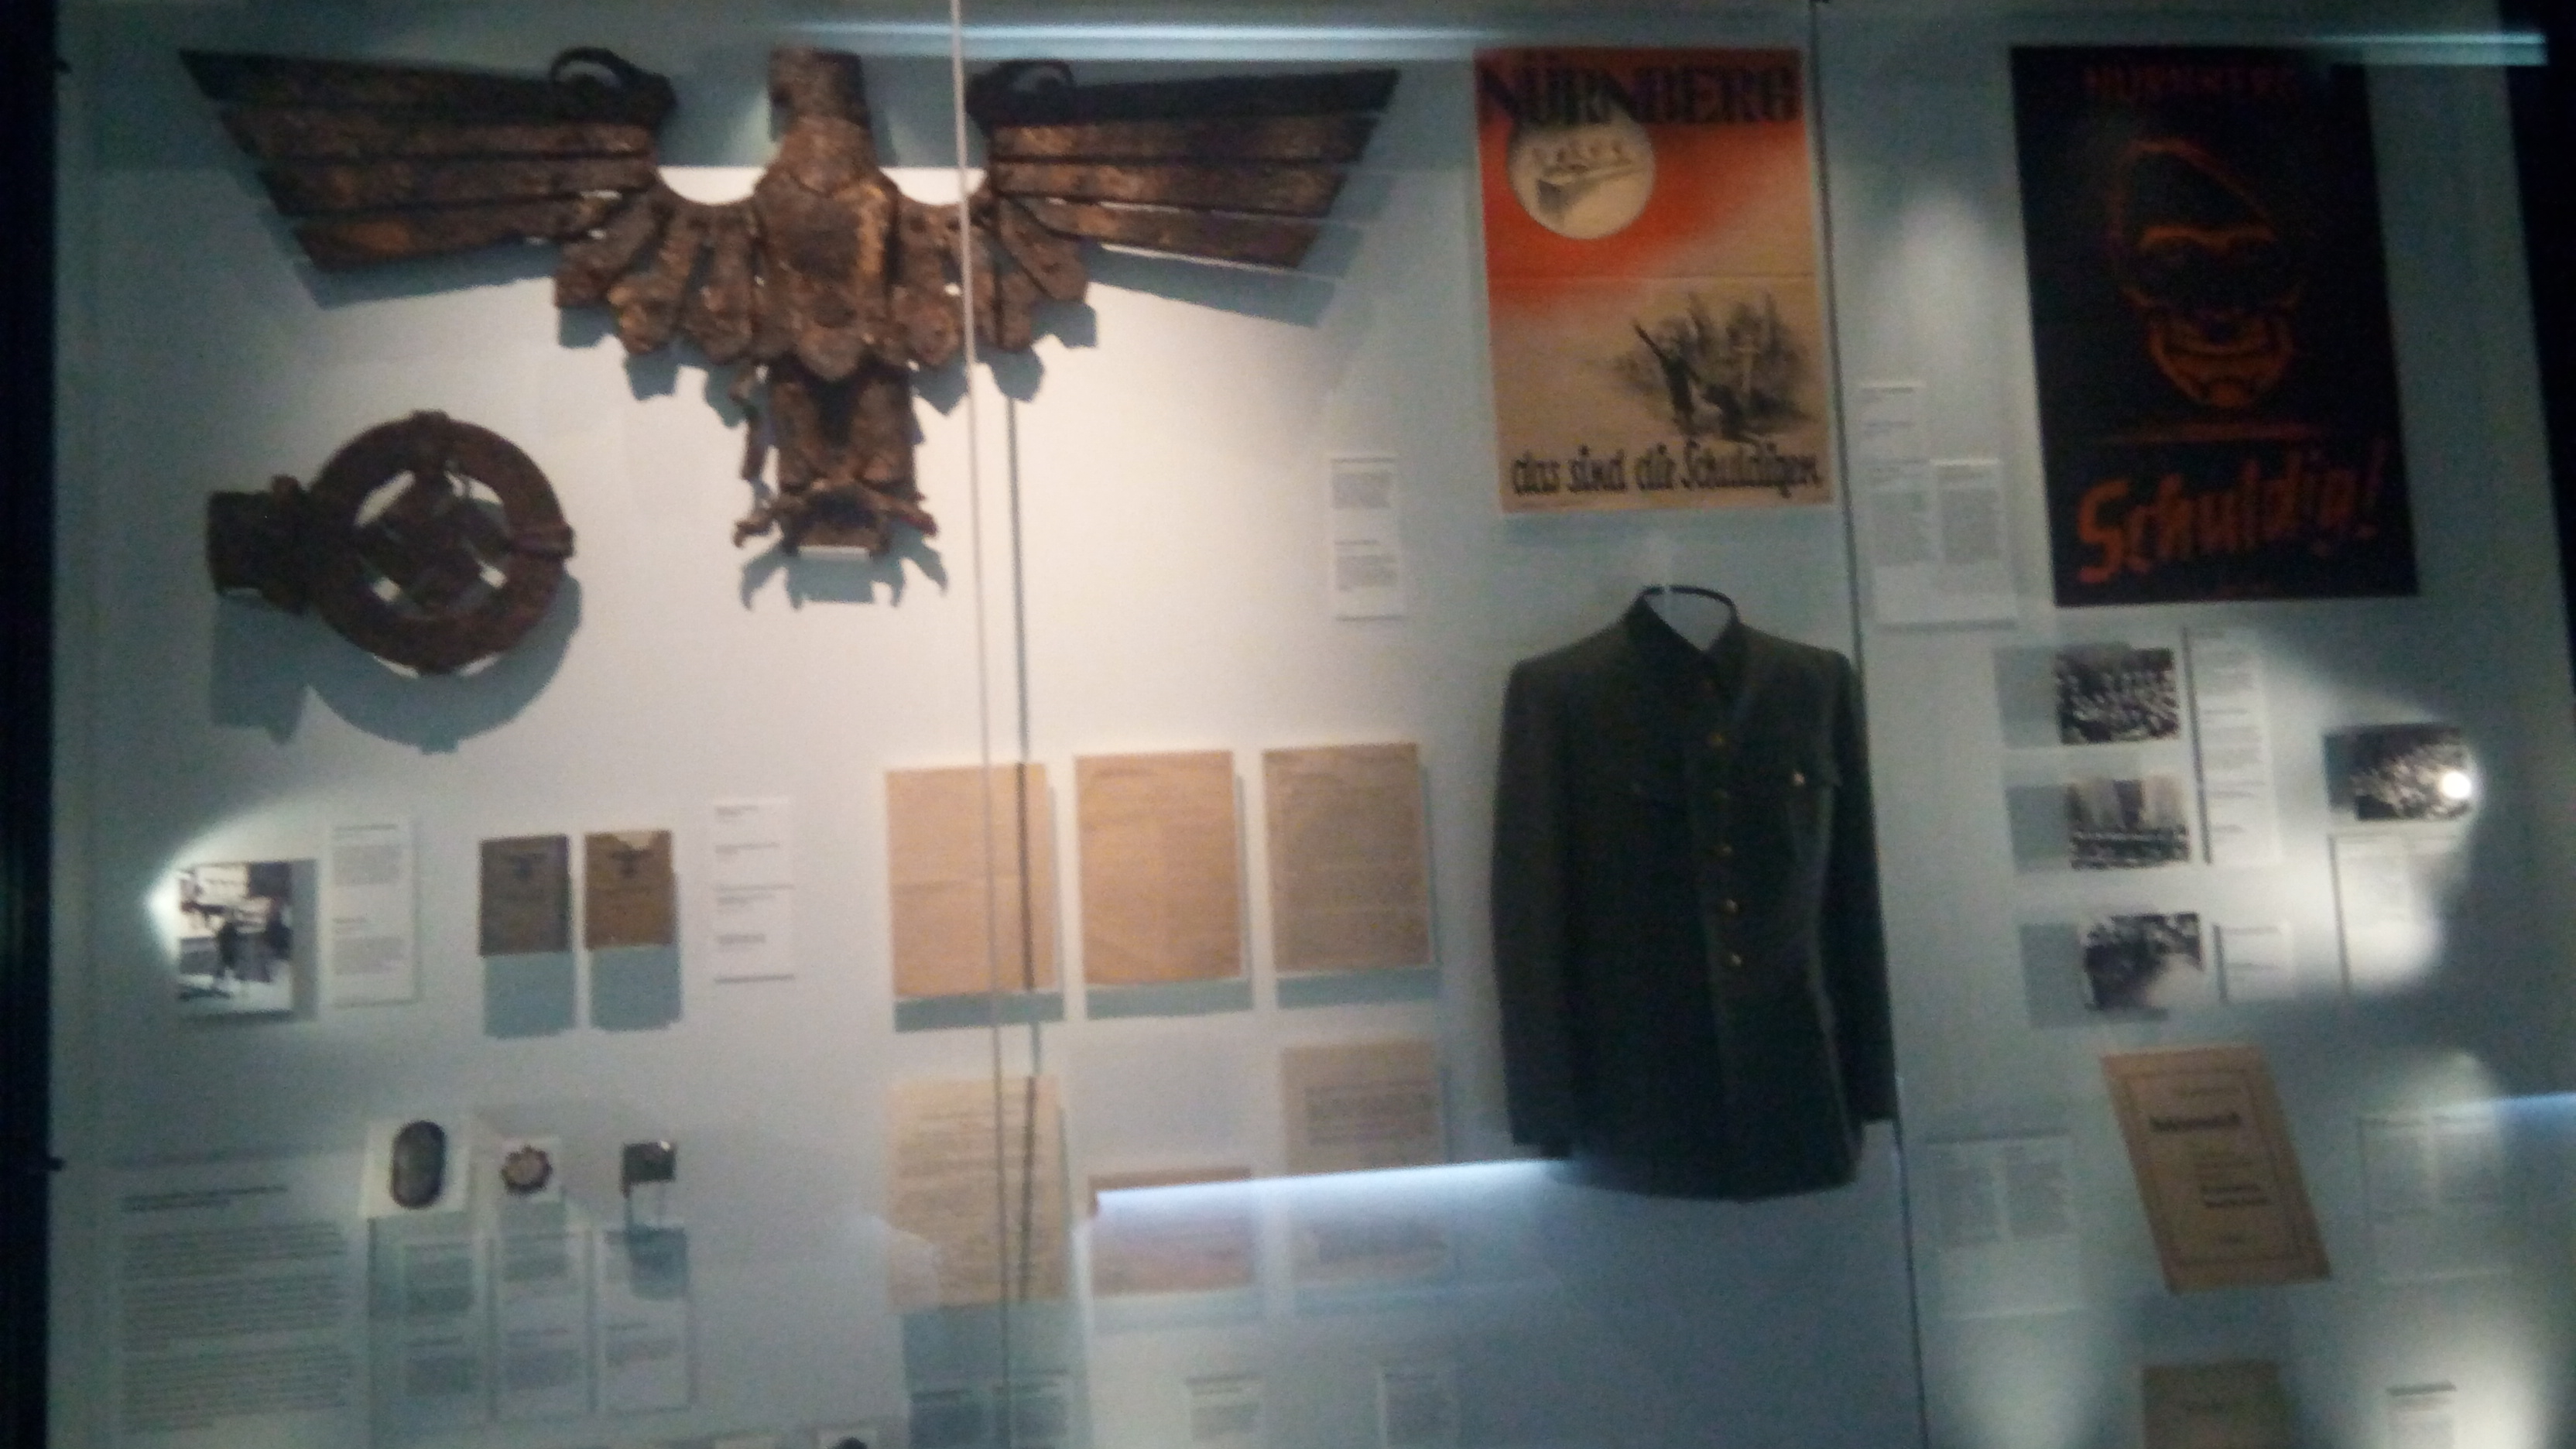 war-museum-2-german-emperialistic-eagle